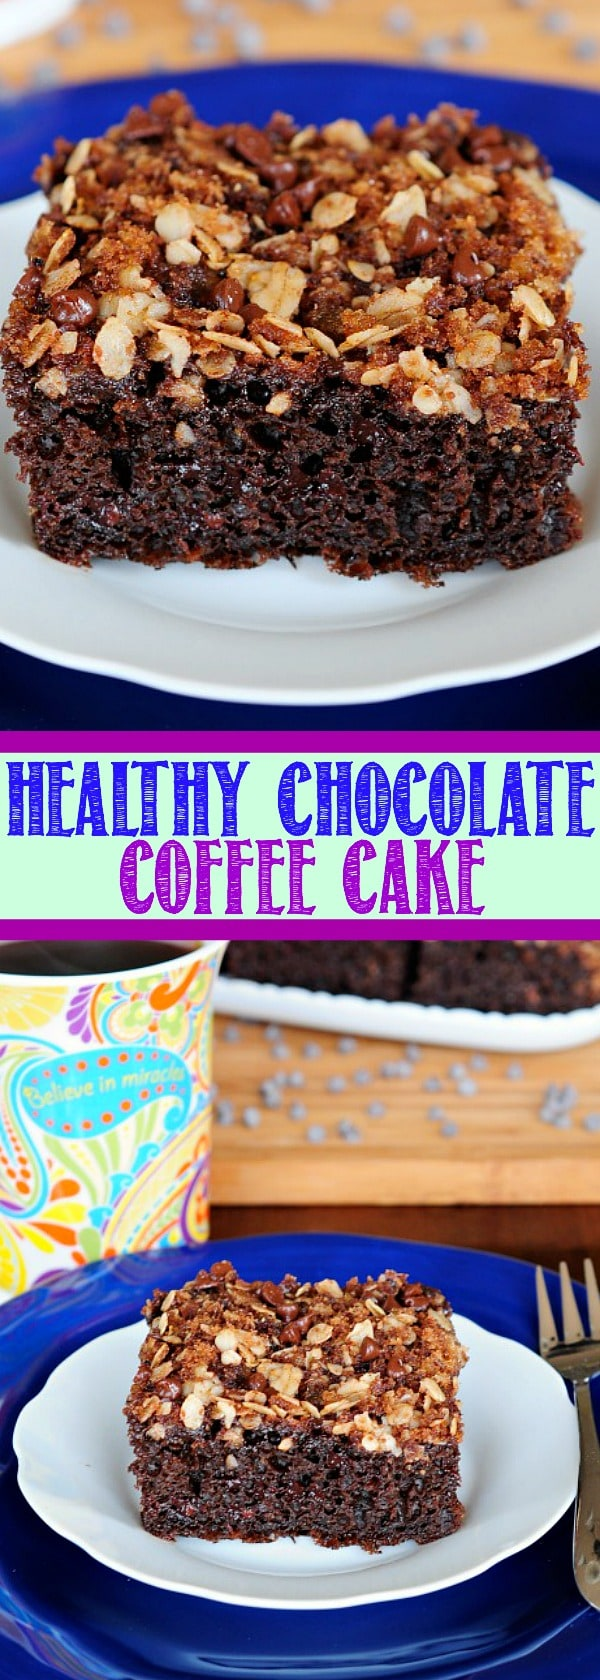 This Chocolate Coffee Cake is light and moist with a rich chocolate flavor and delicious streusel topping. Bonus! It's made with Greek yogurt and no butter!